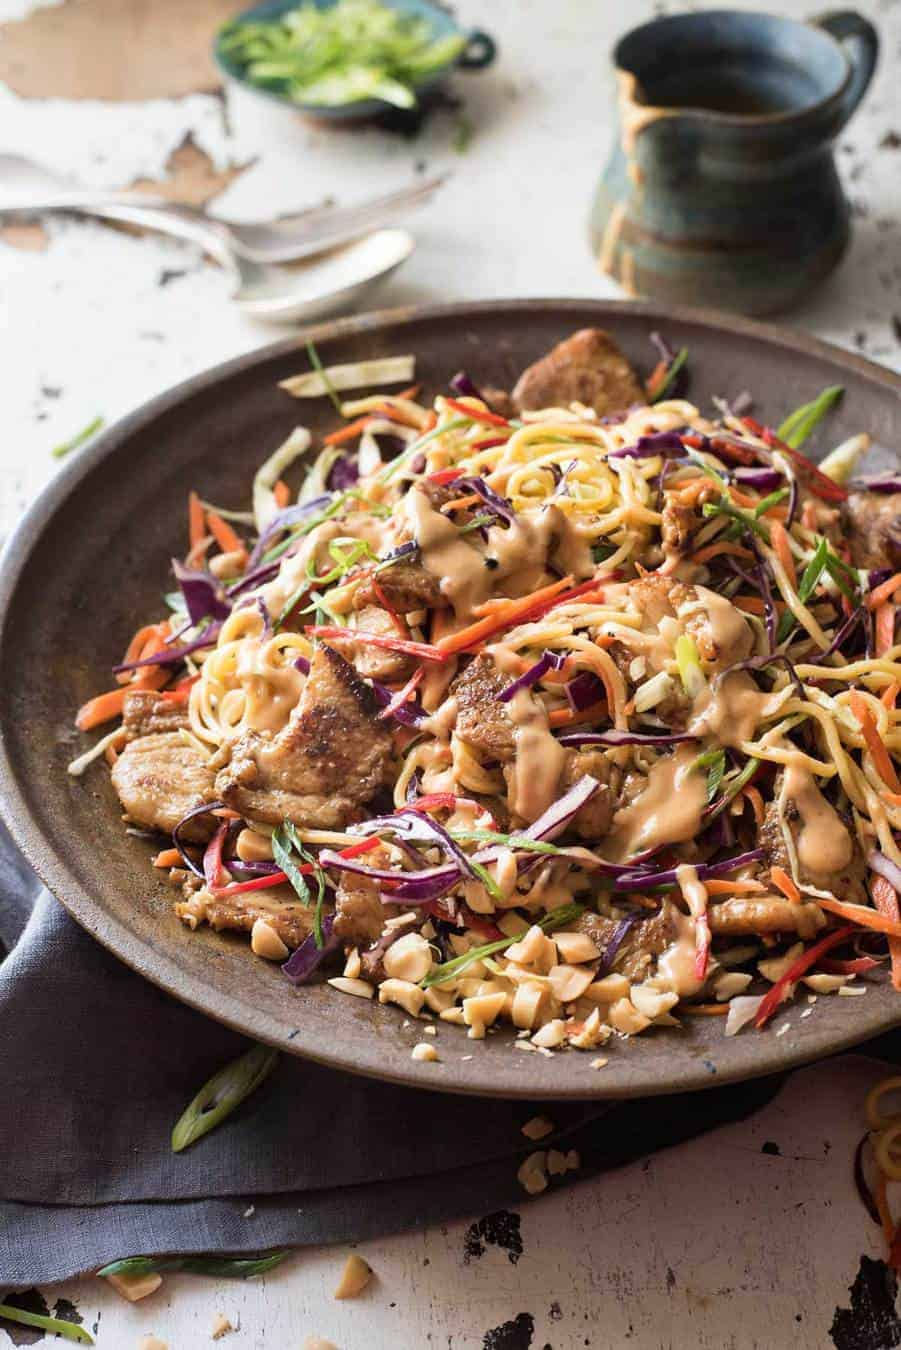 Satay Chicken Noodle Salad drizzled with peanut dressing in a rustic dark brown bowl.